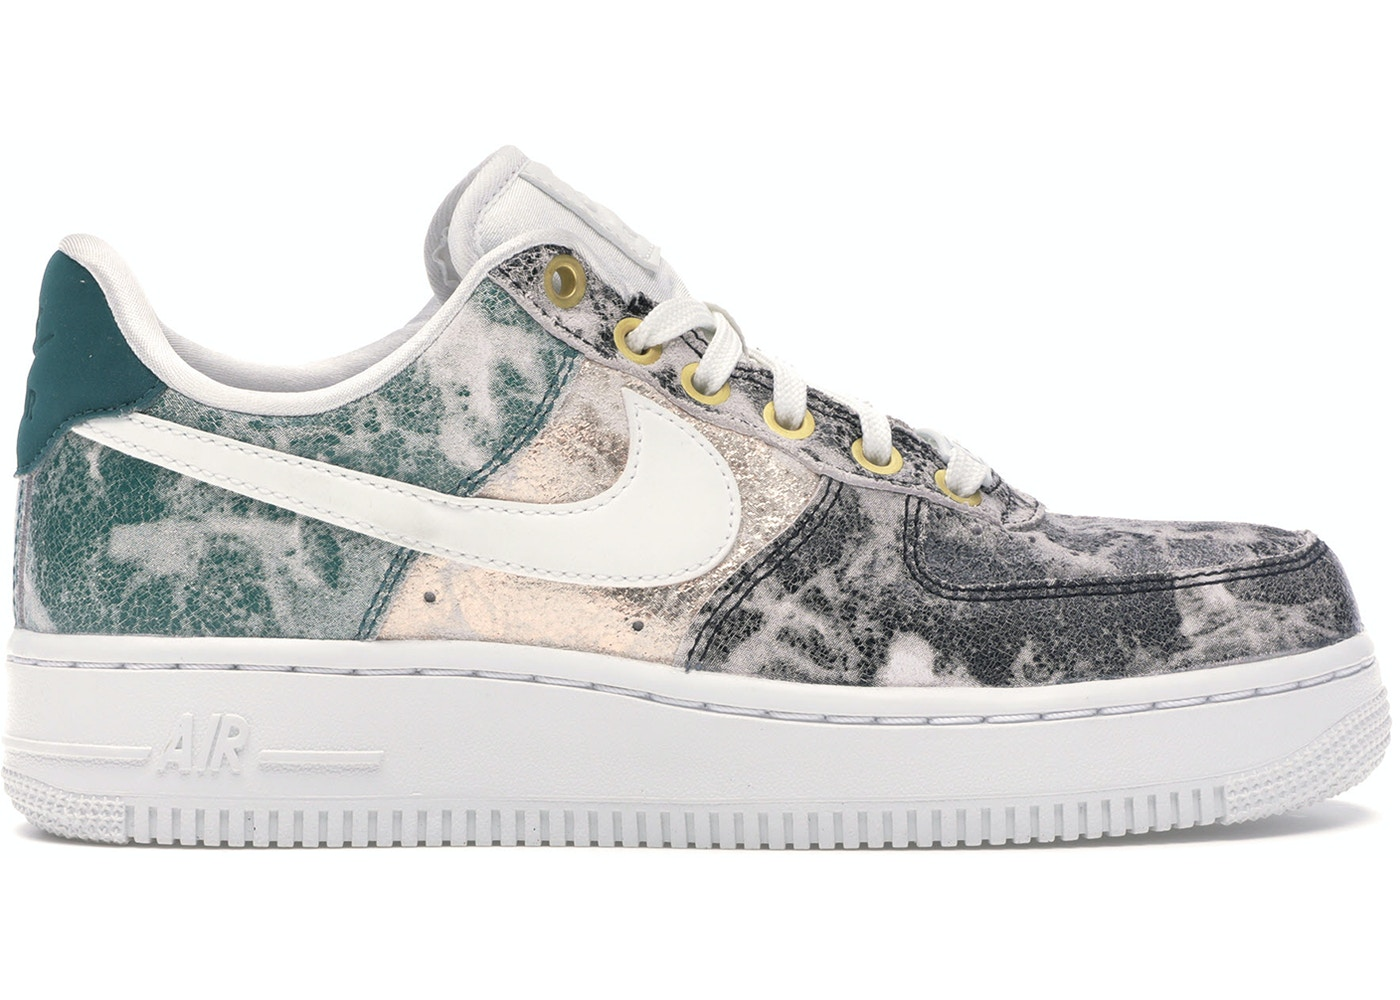 2a8f2dd5 Air Force 1 Low Metallic Leather (W) - AO1017-100